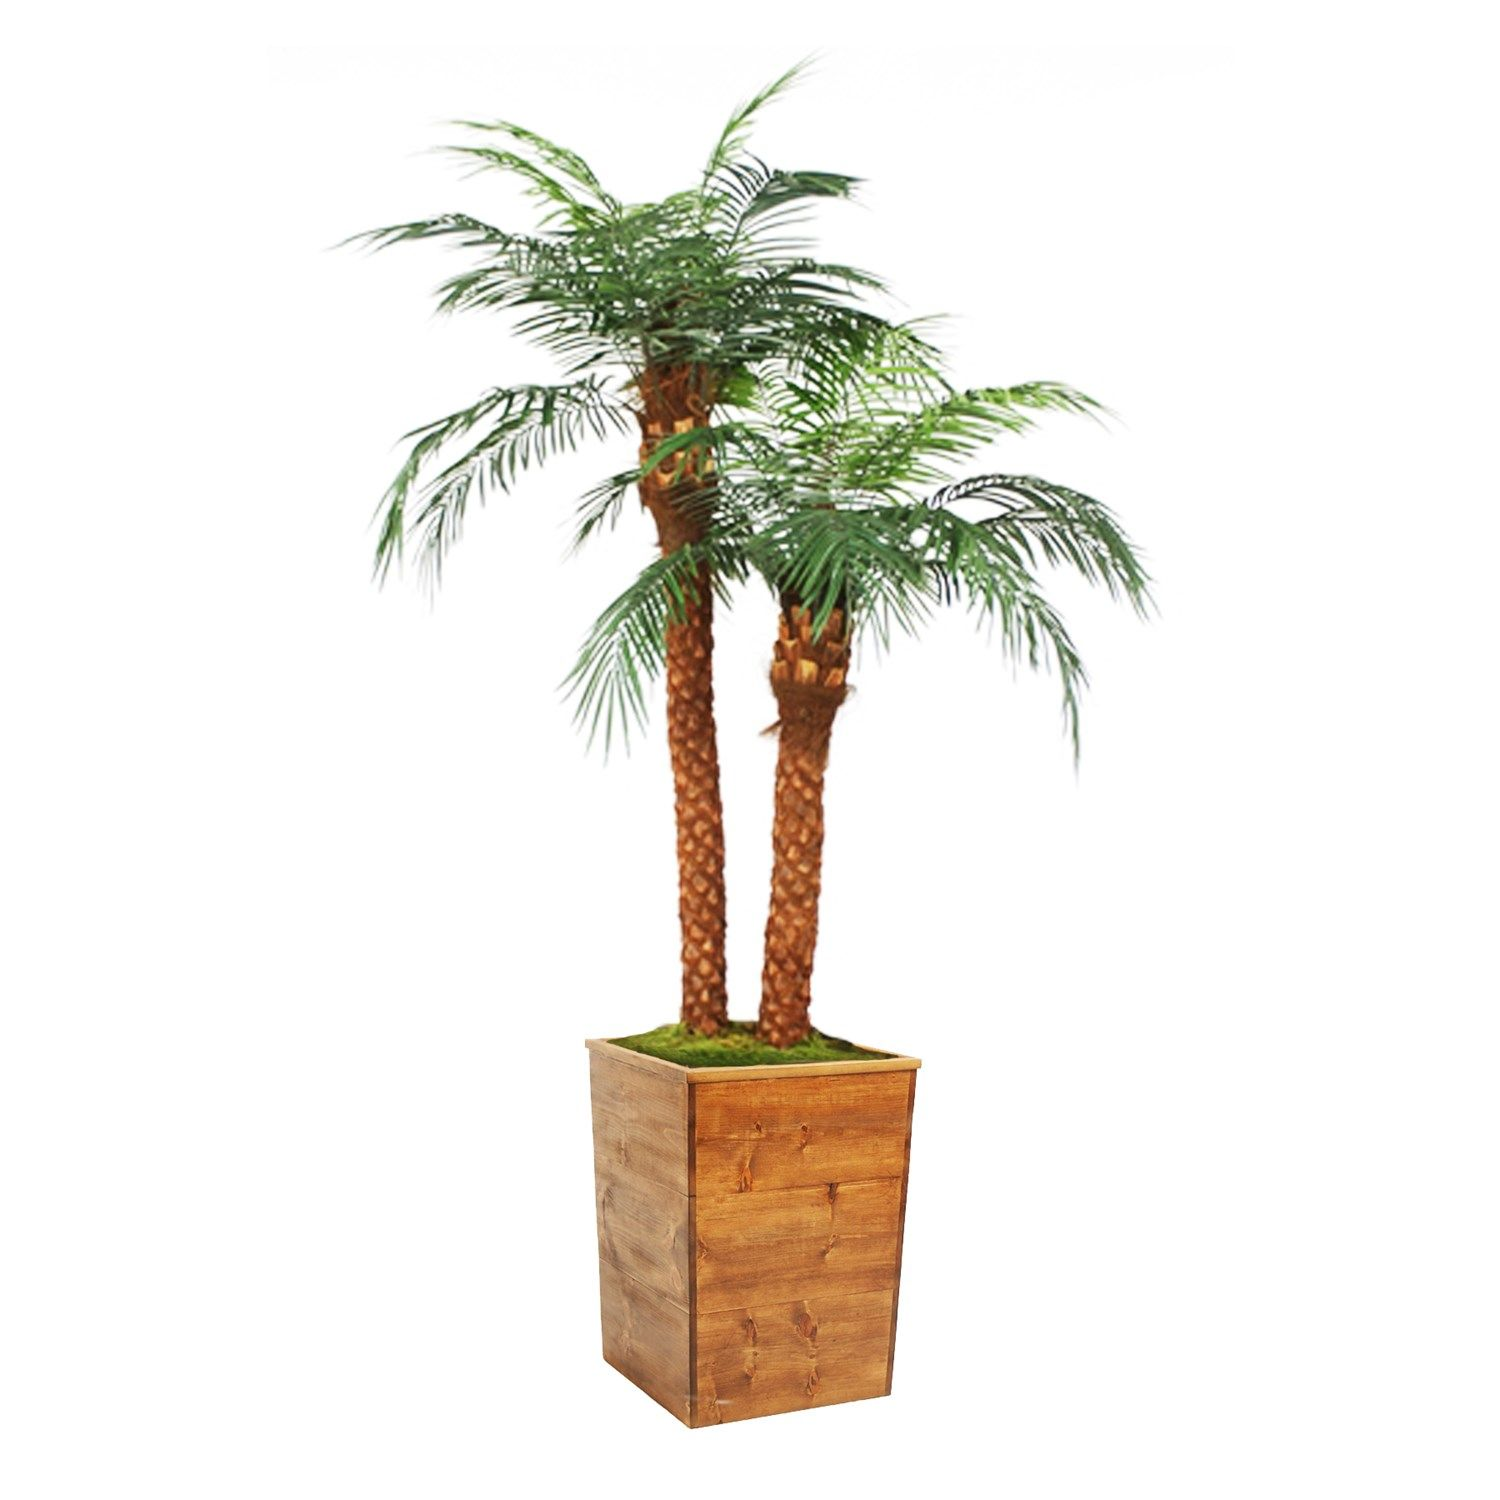 Distinctive Designs T 768 85 L9 8 1 2 Phoeni X Palm Tree X 2 In Tall Square Stained Wood Planter With Images Distinctive Designs Staining Wood Wood Planters